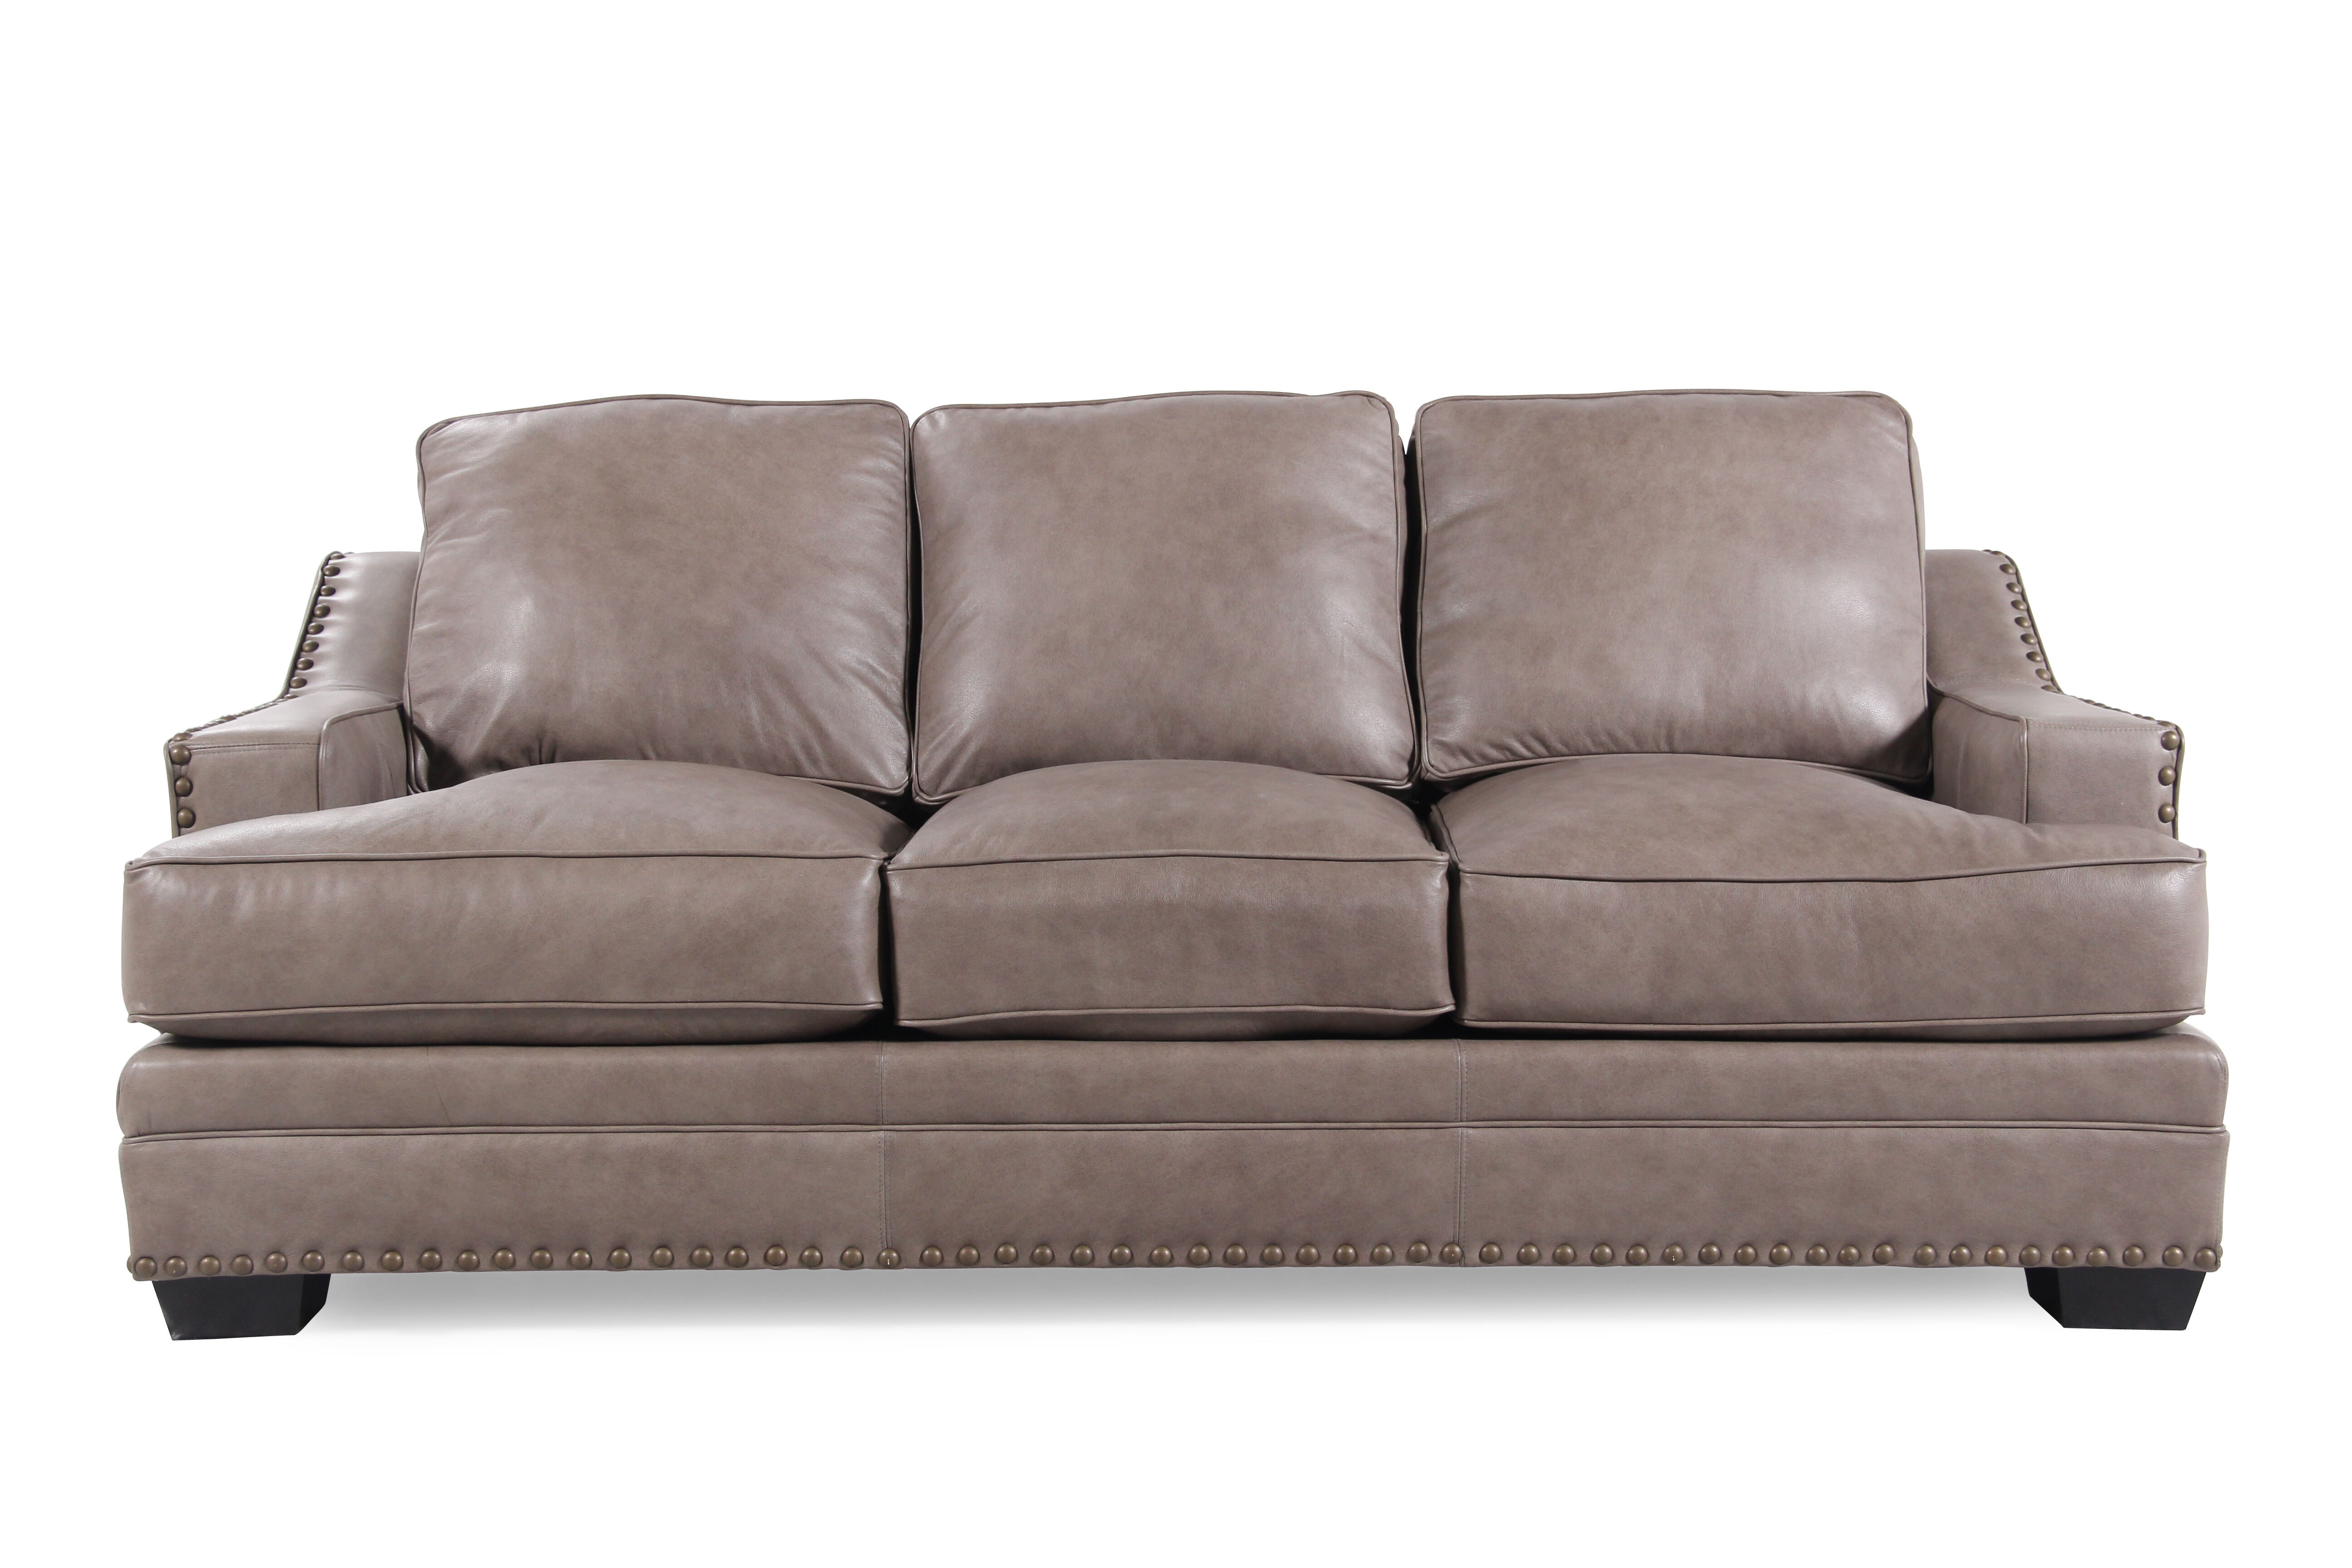 LowProfile NailheadAccented Leather 84 Sofa in Chestnut Brown